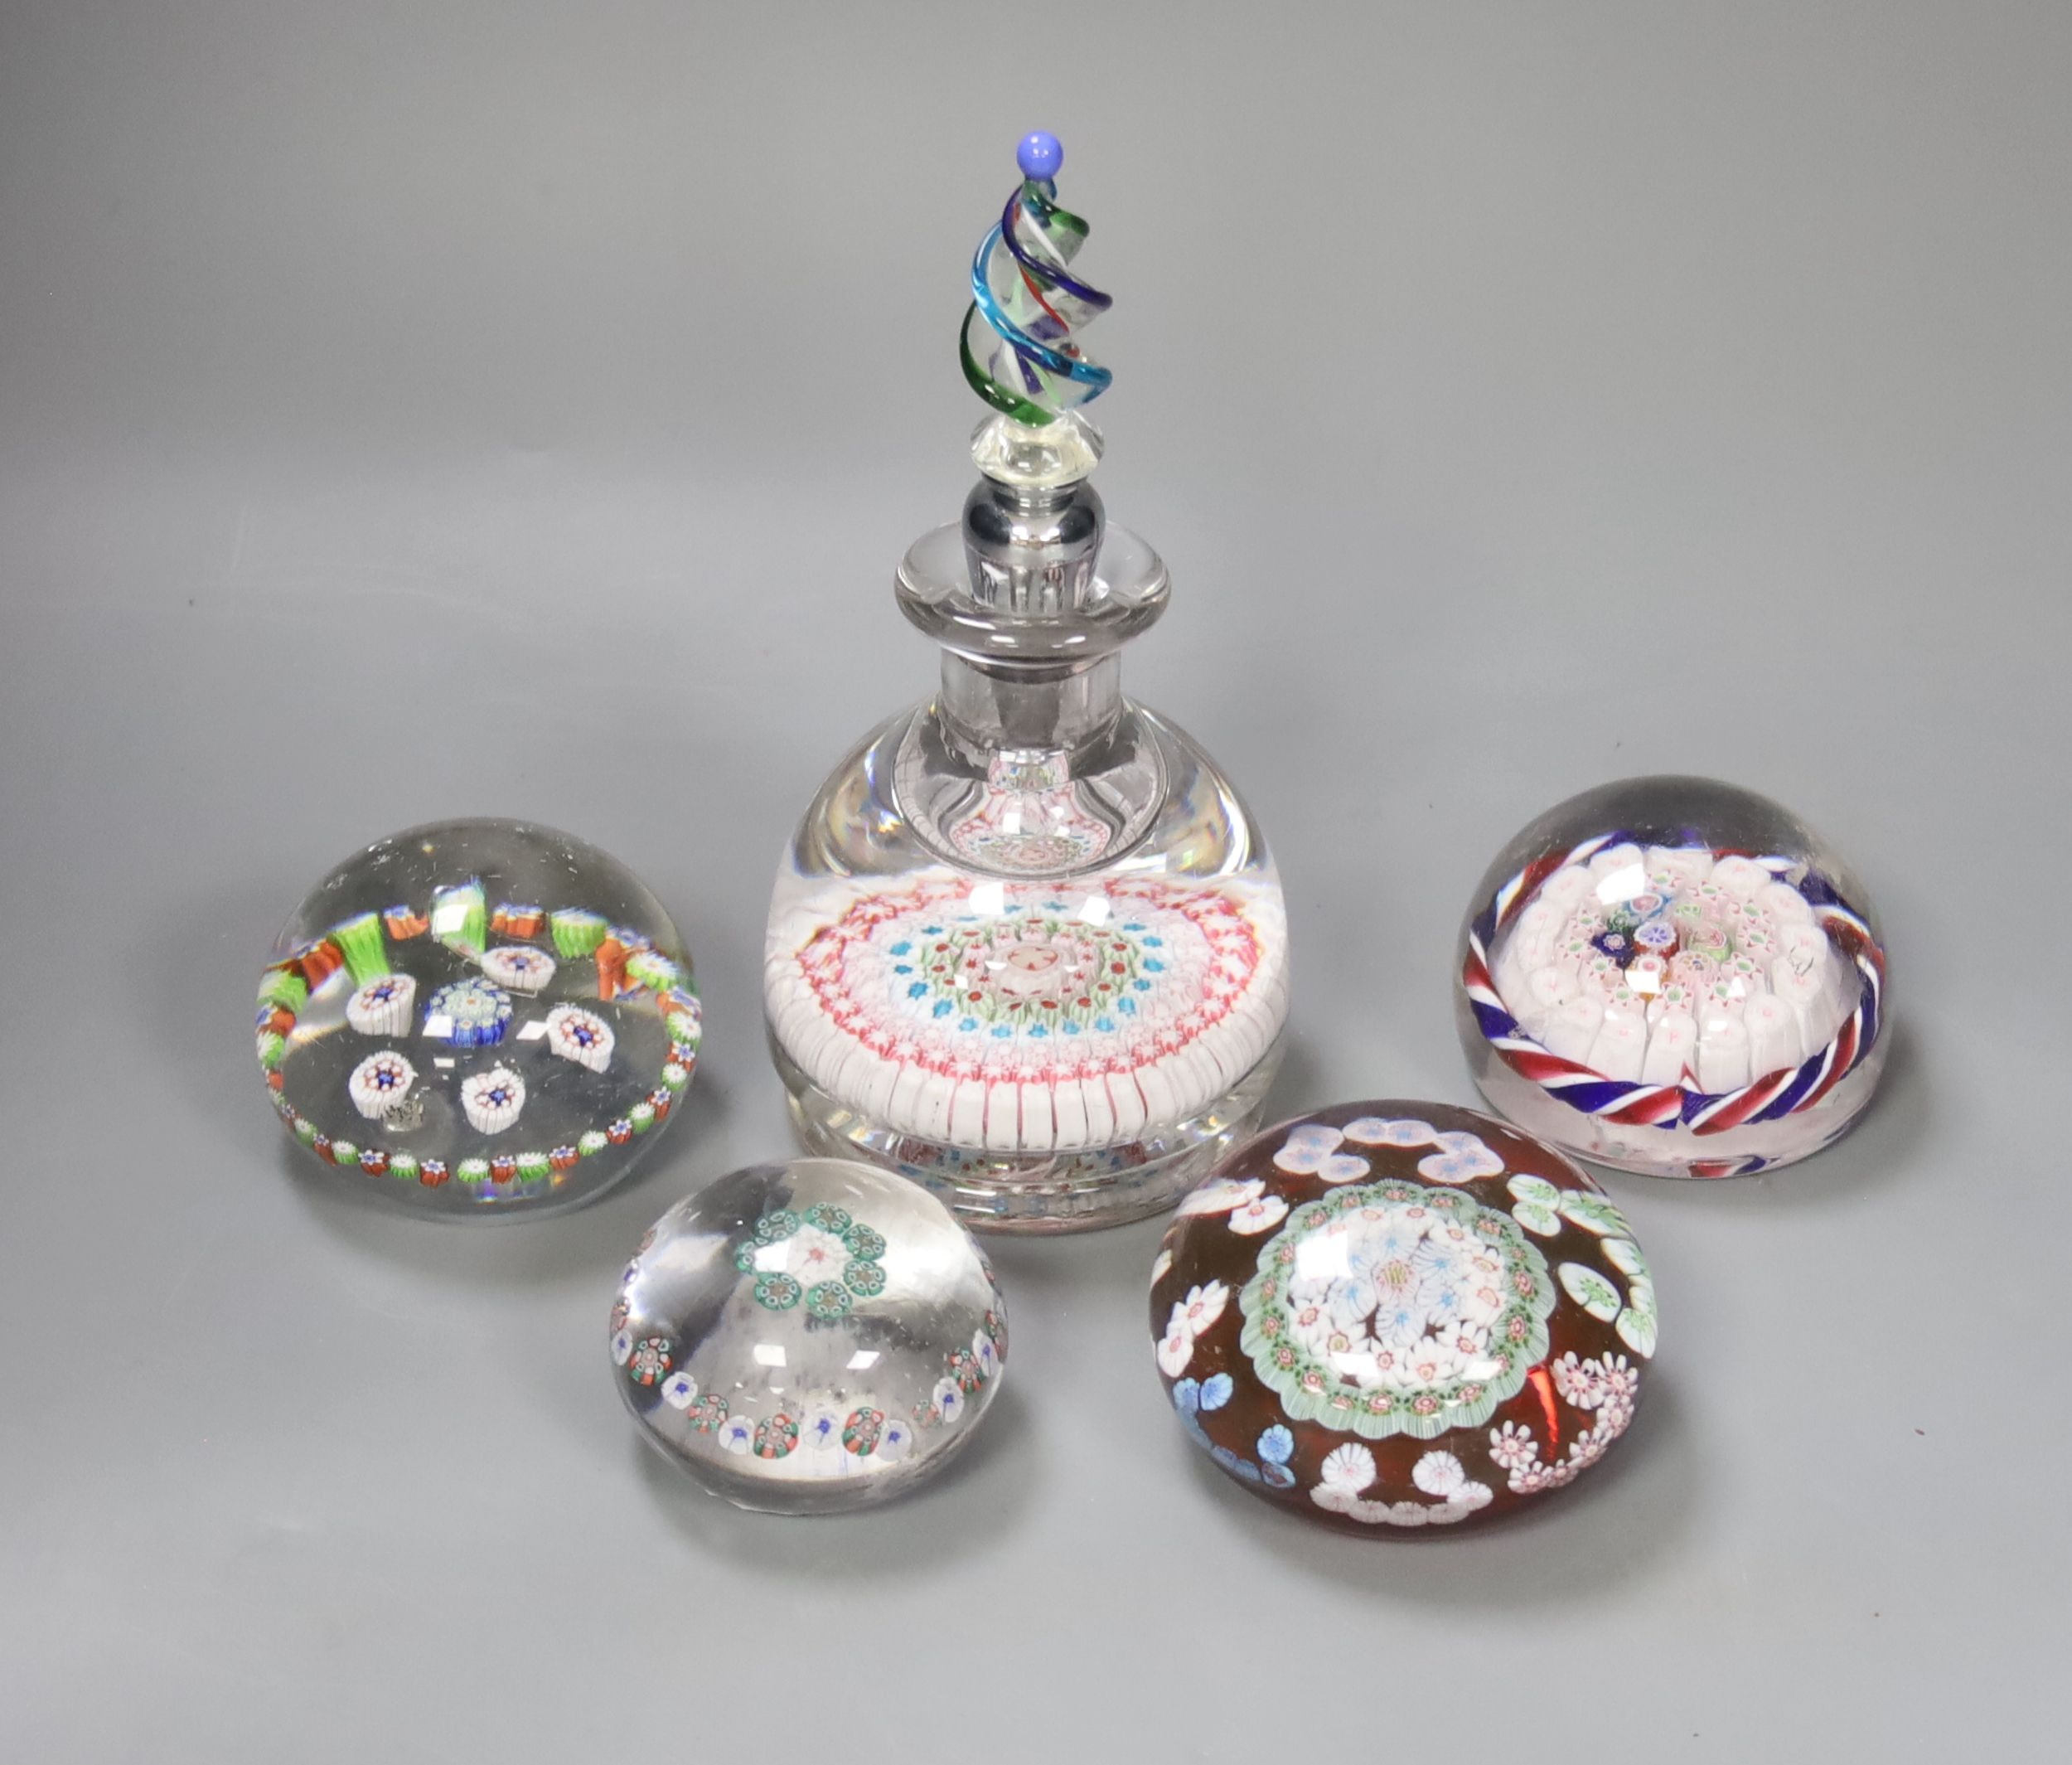 A millifiore inkwell and four weights